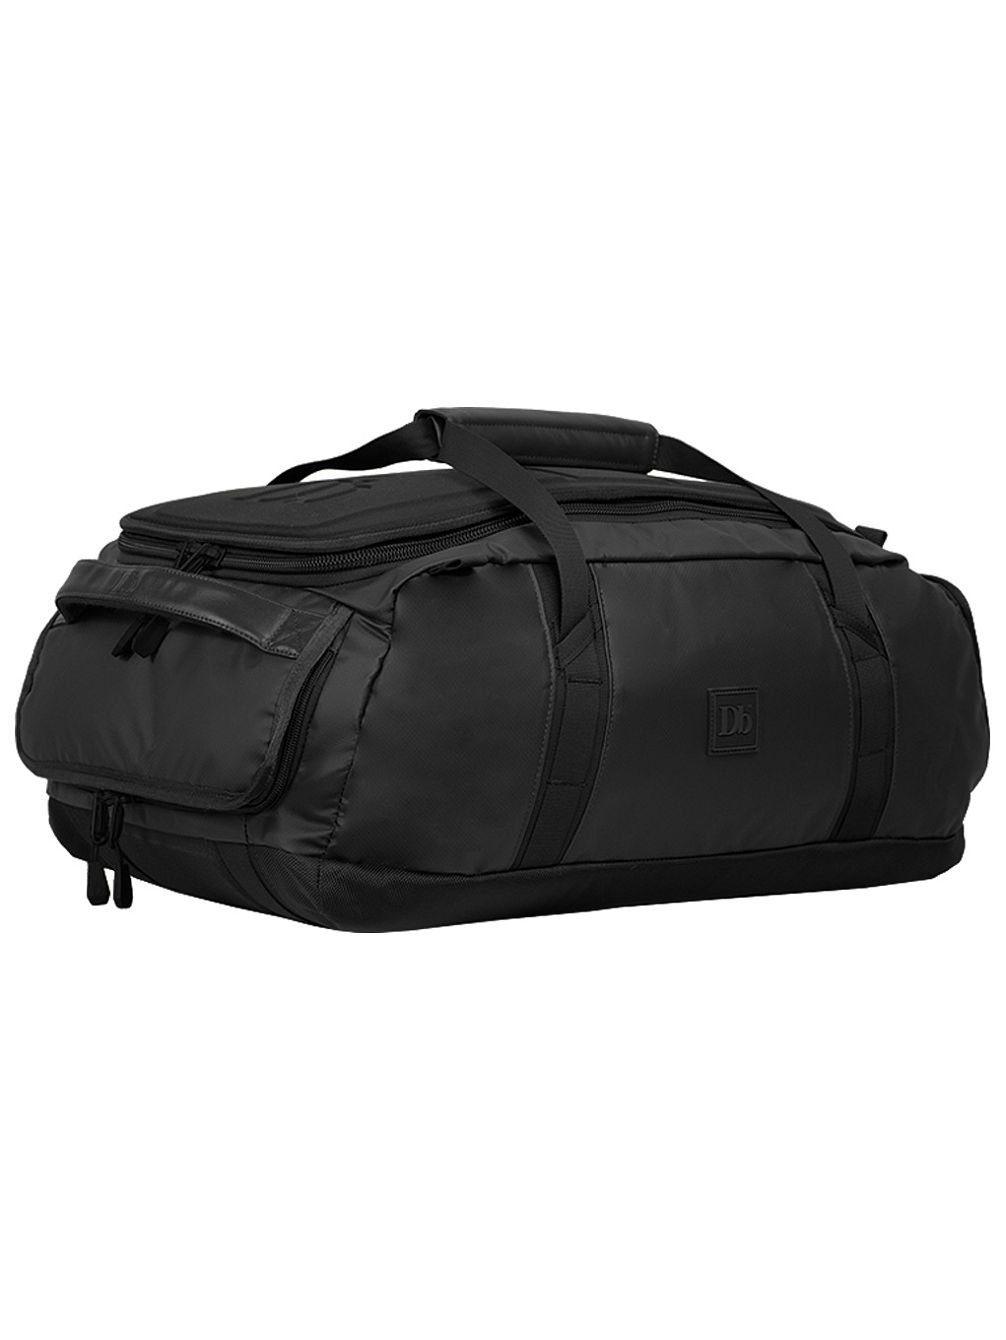 The Carryall 65L Travelbag